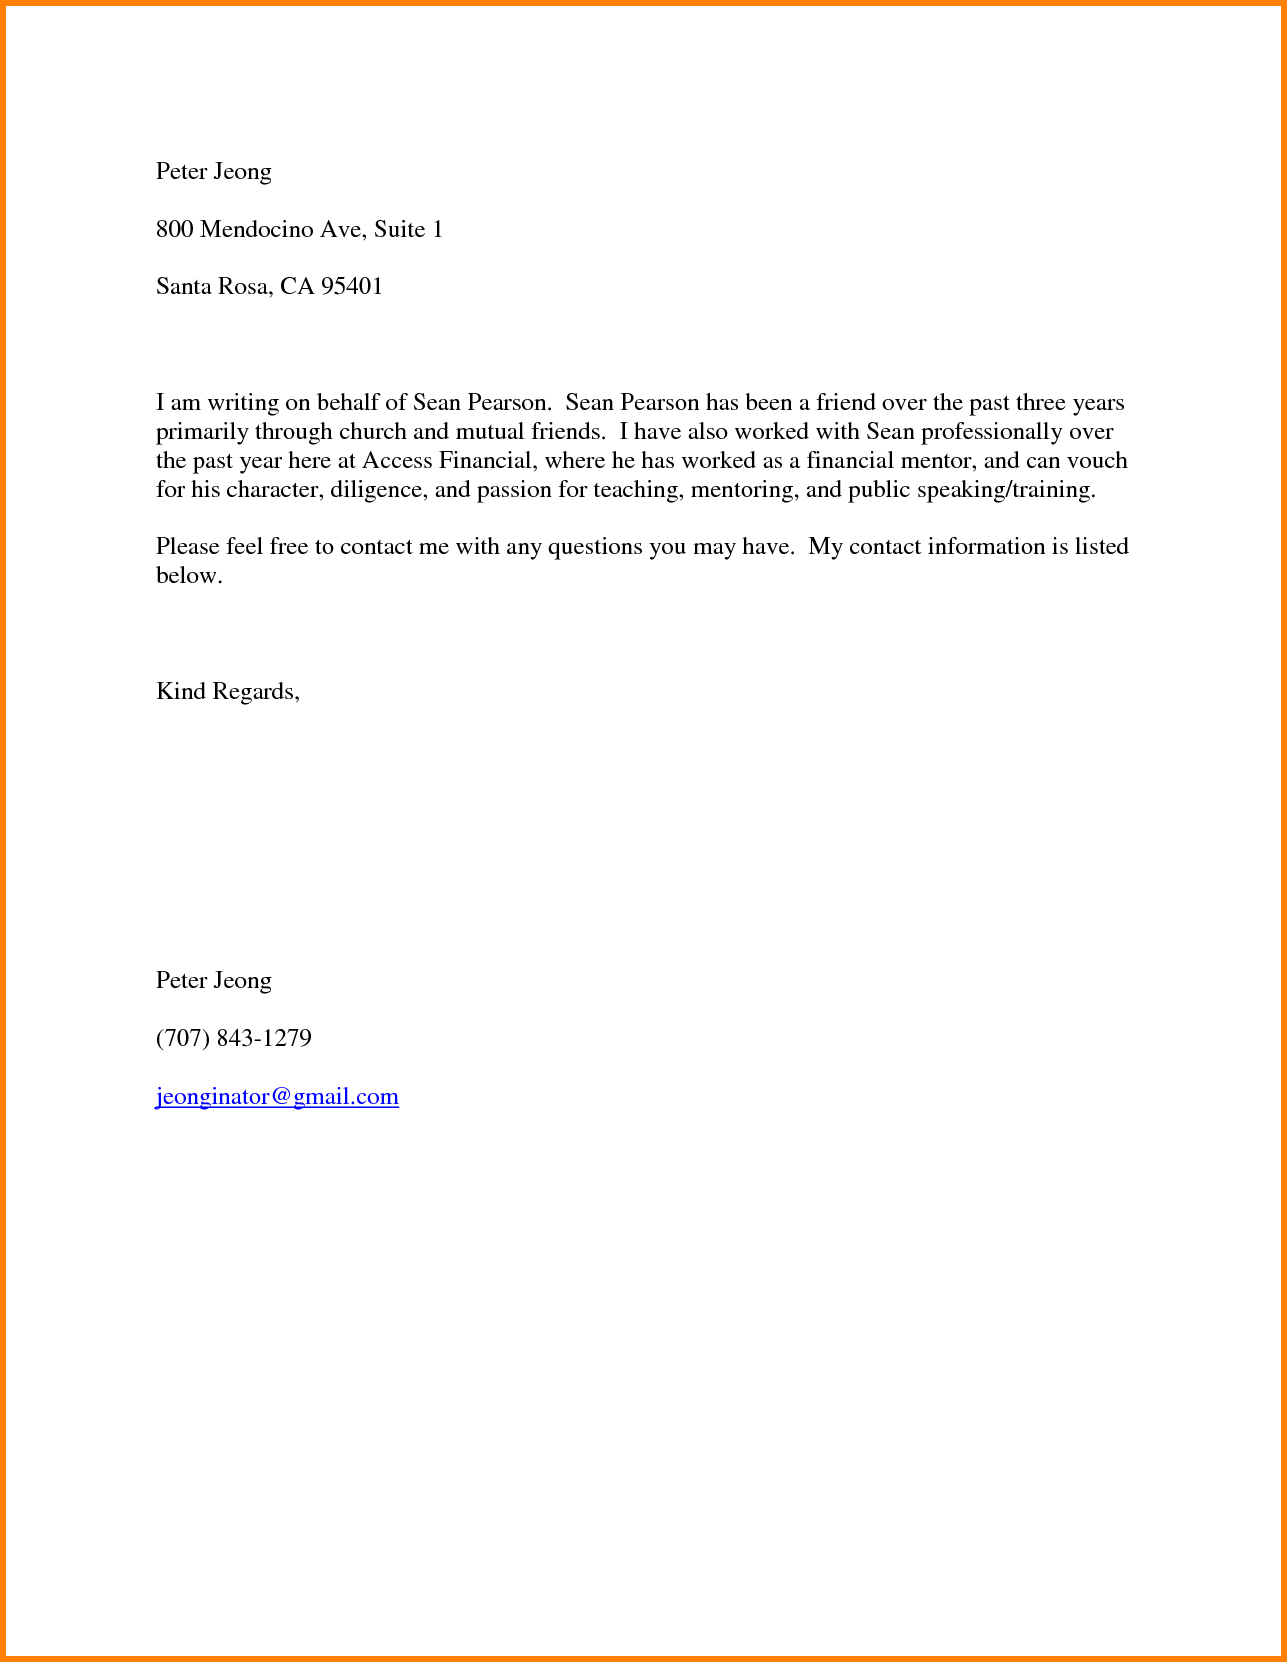 Sample Character Reference Letter for A Friend Template - 7 Character Letter for A Friend Resume Reference